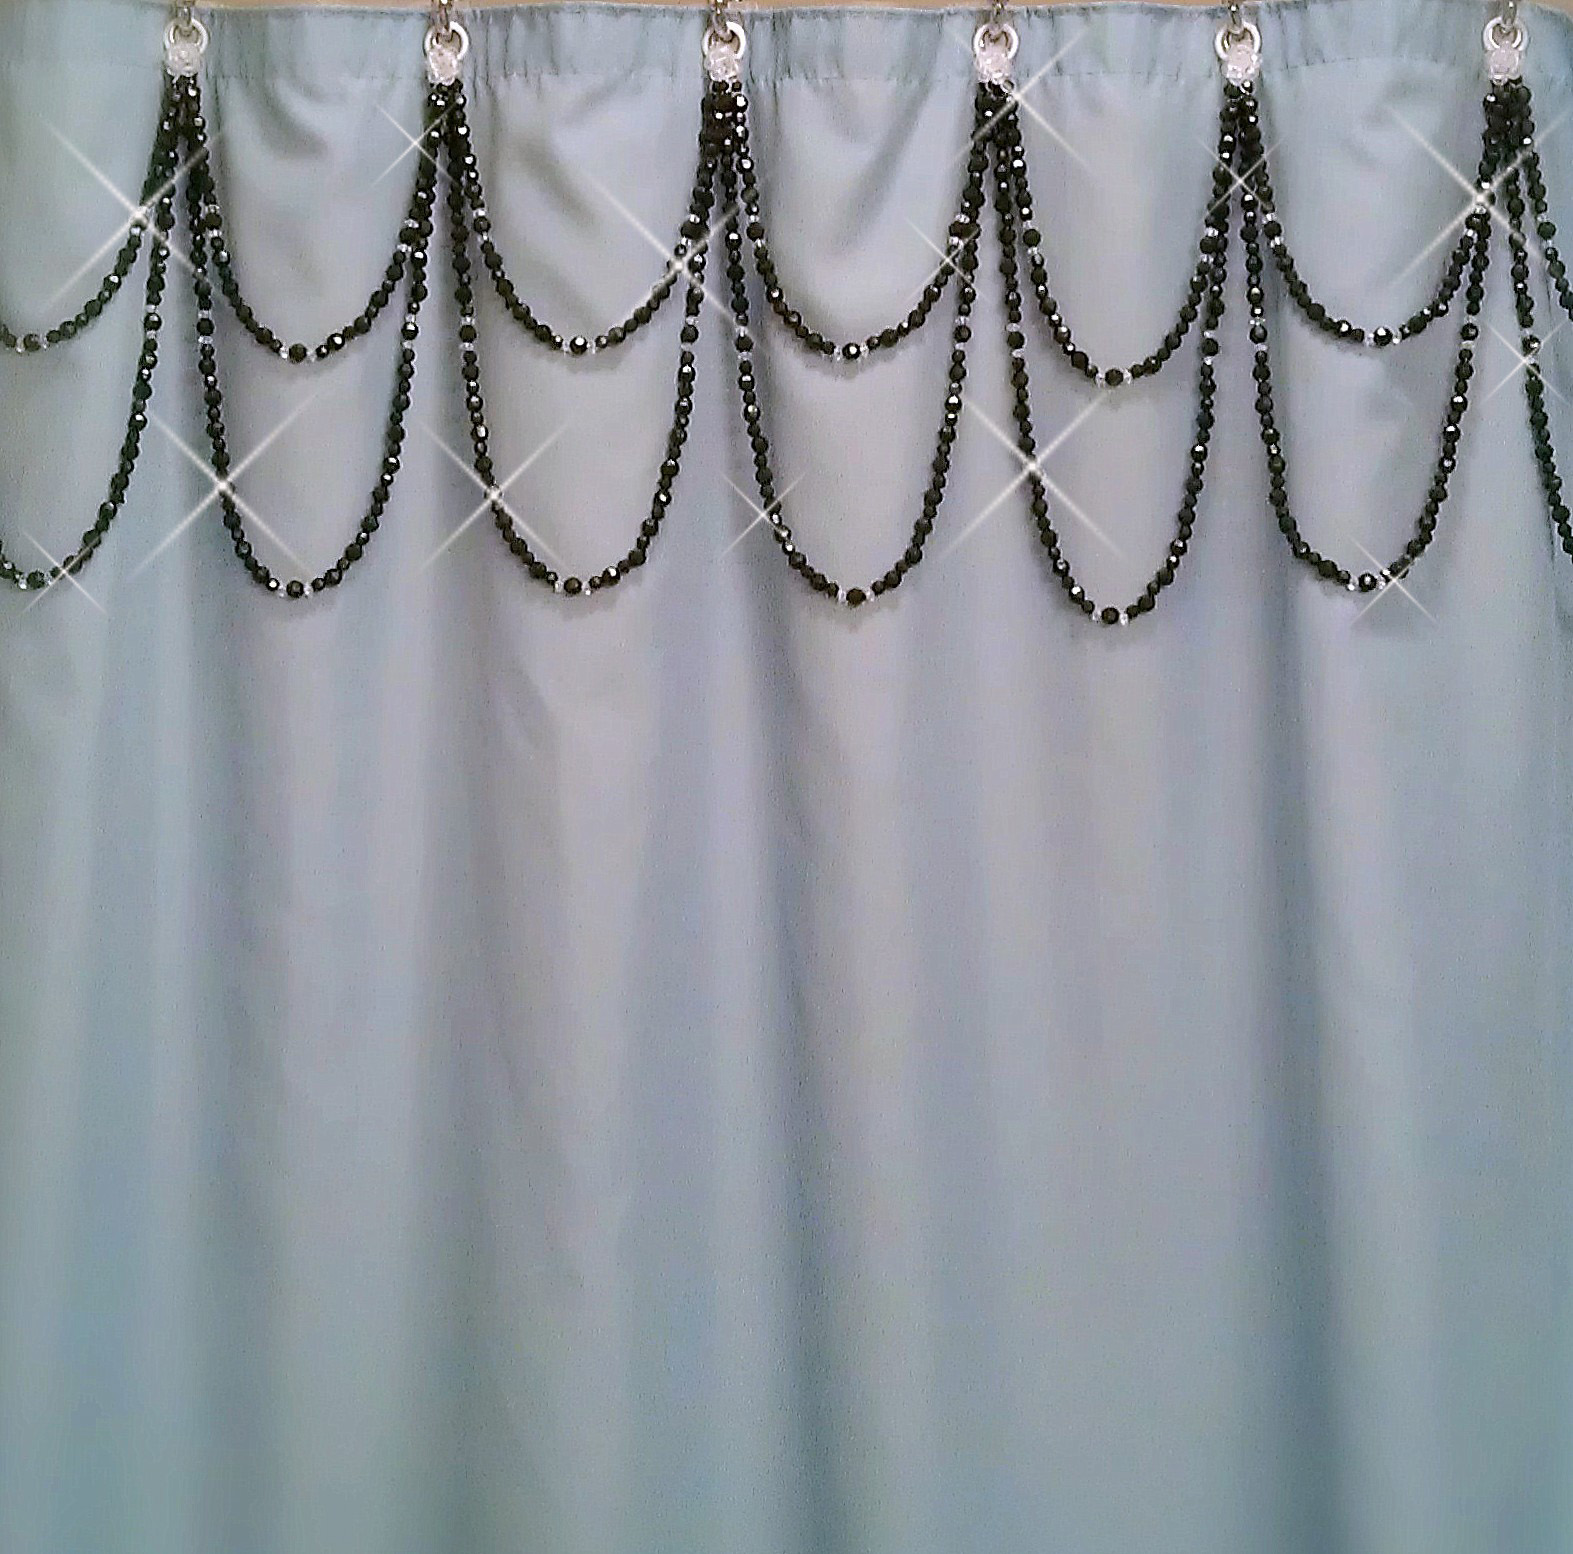 Teal and black shower curtain - Shadez Of Michelle Shower Curtain Bling Black And Crystal